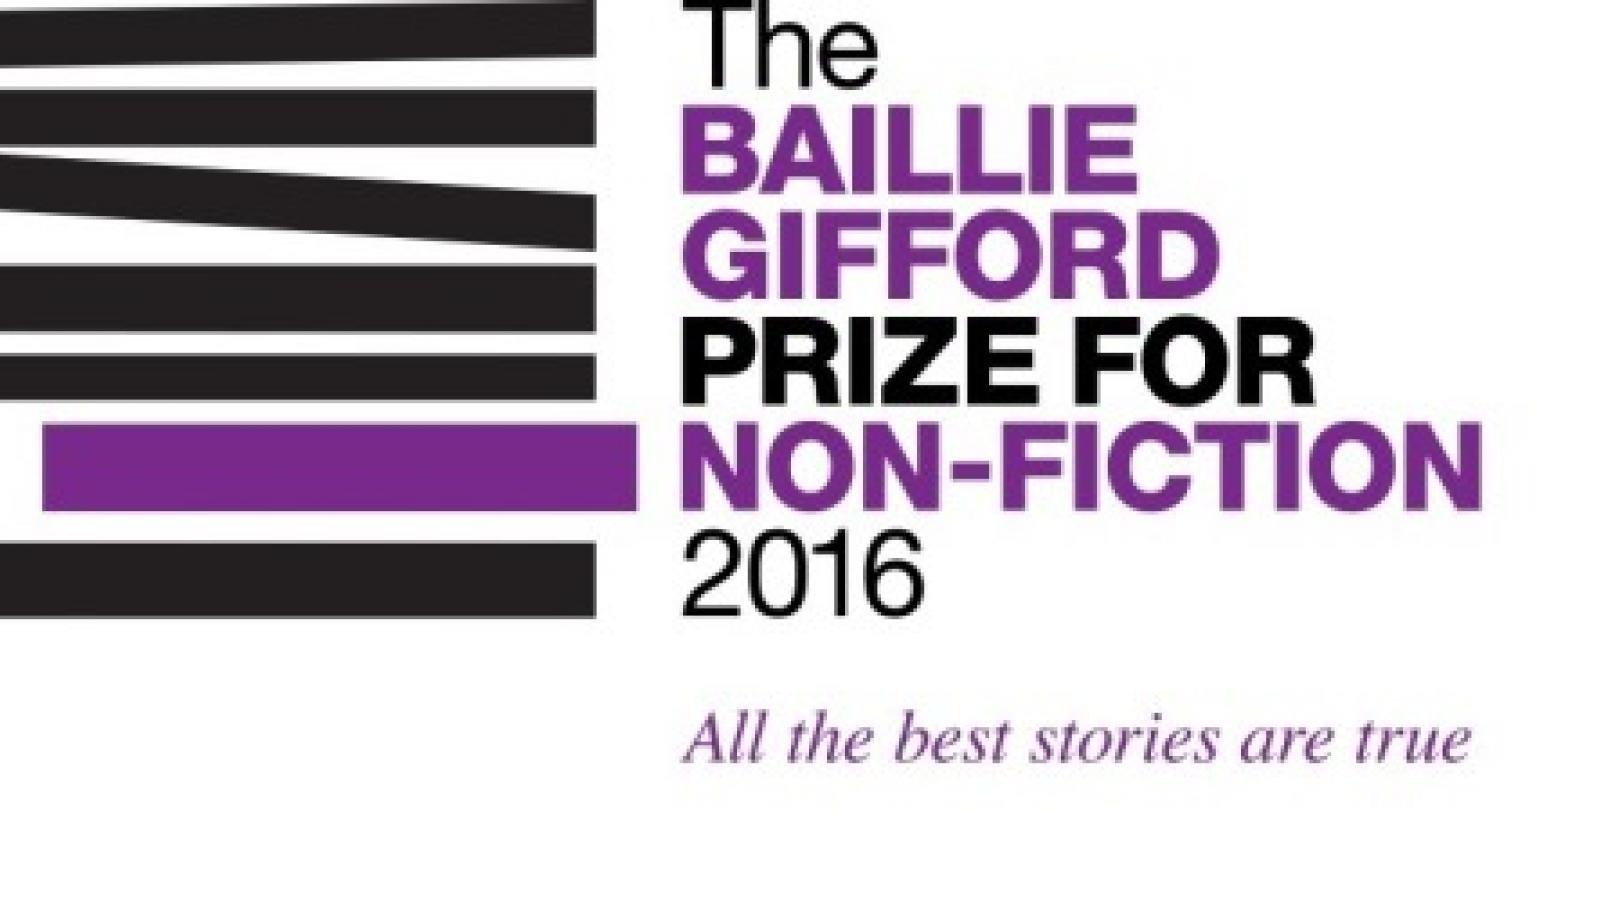 The Baillie Gifford Prize logo